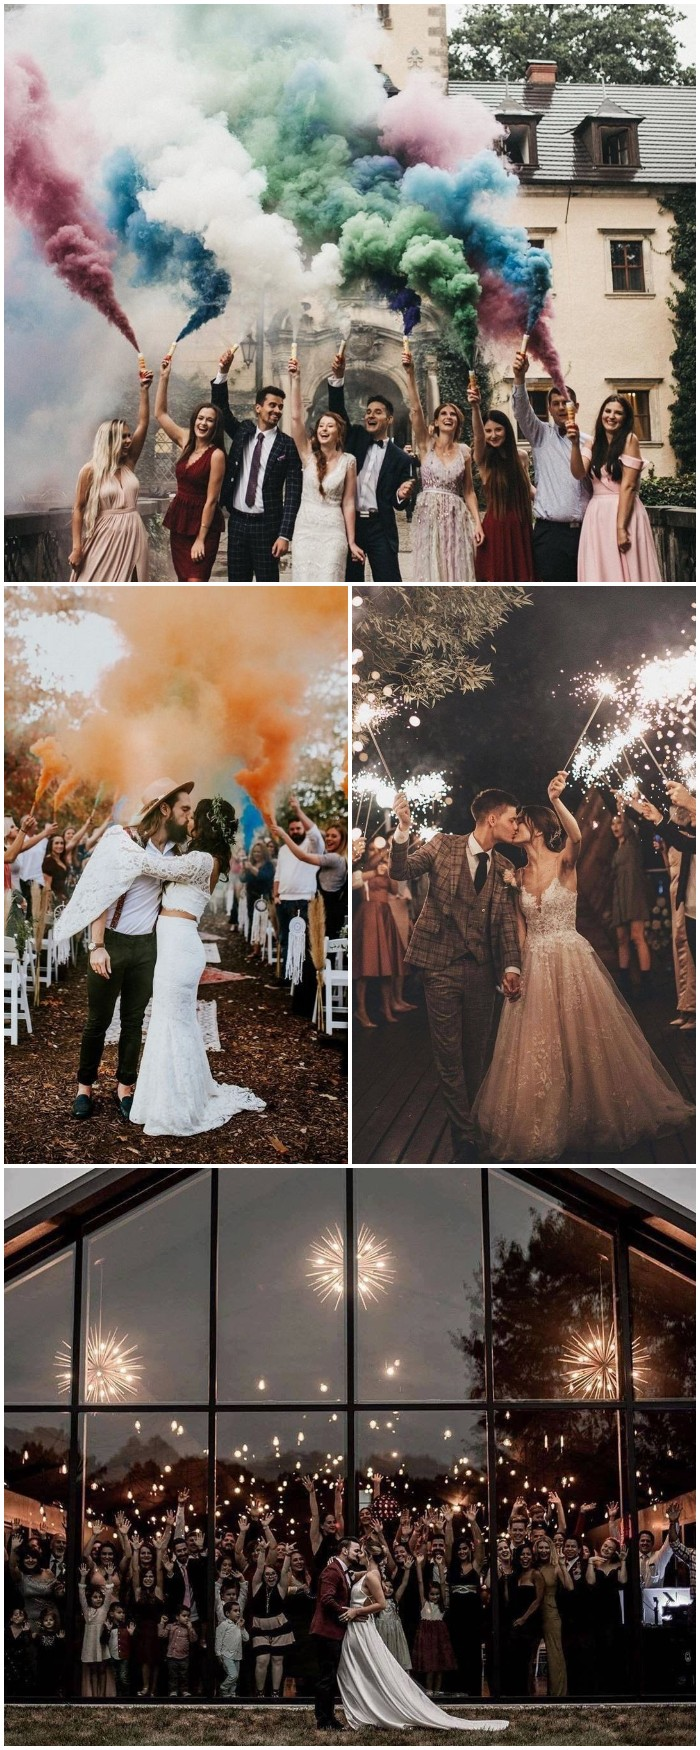 best wedding photo ides with smoke bombs and lights